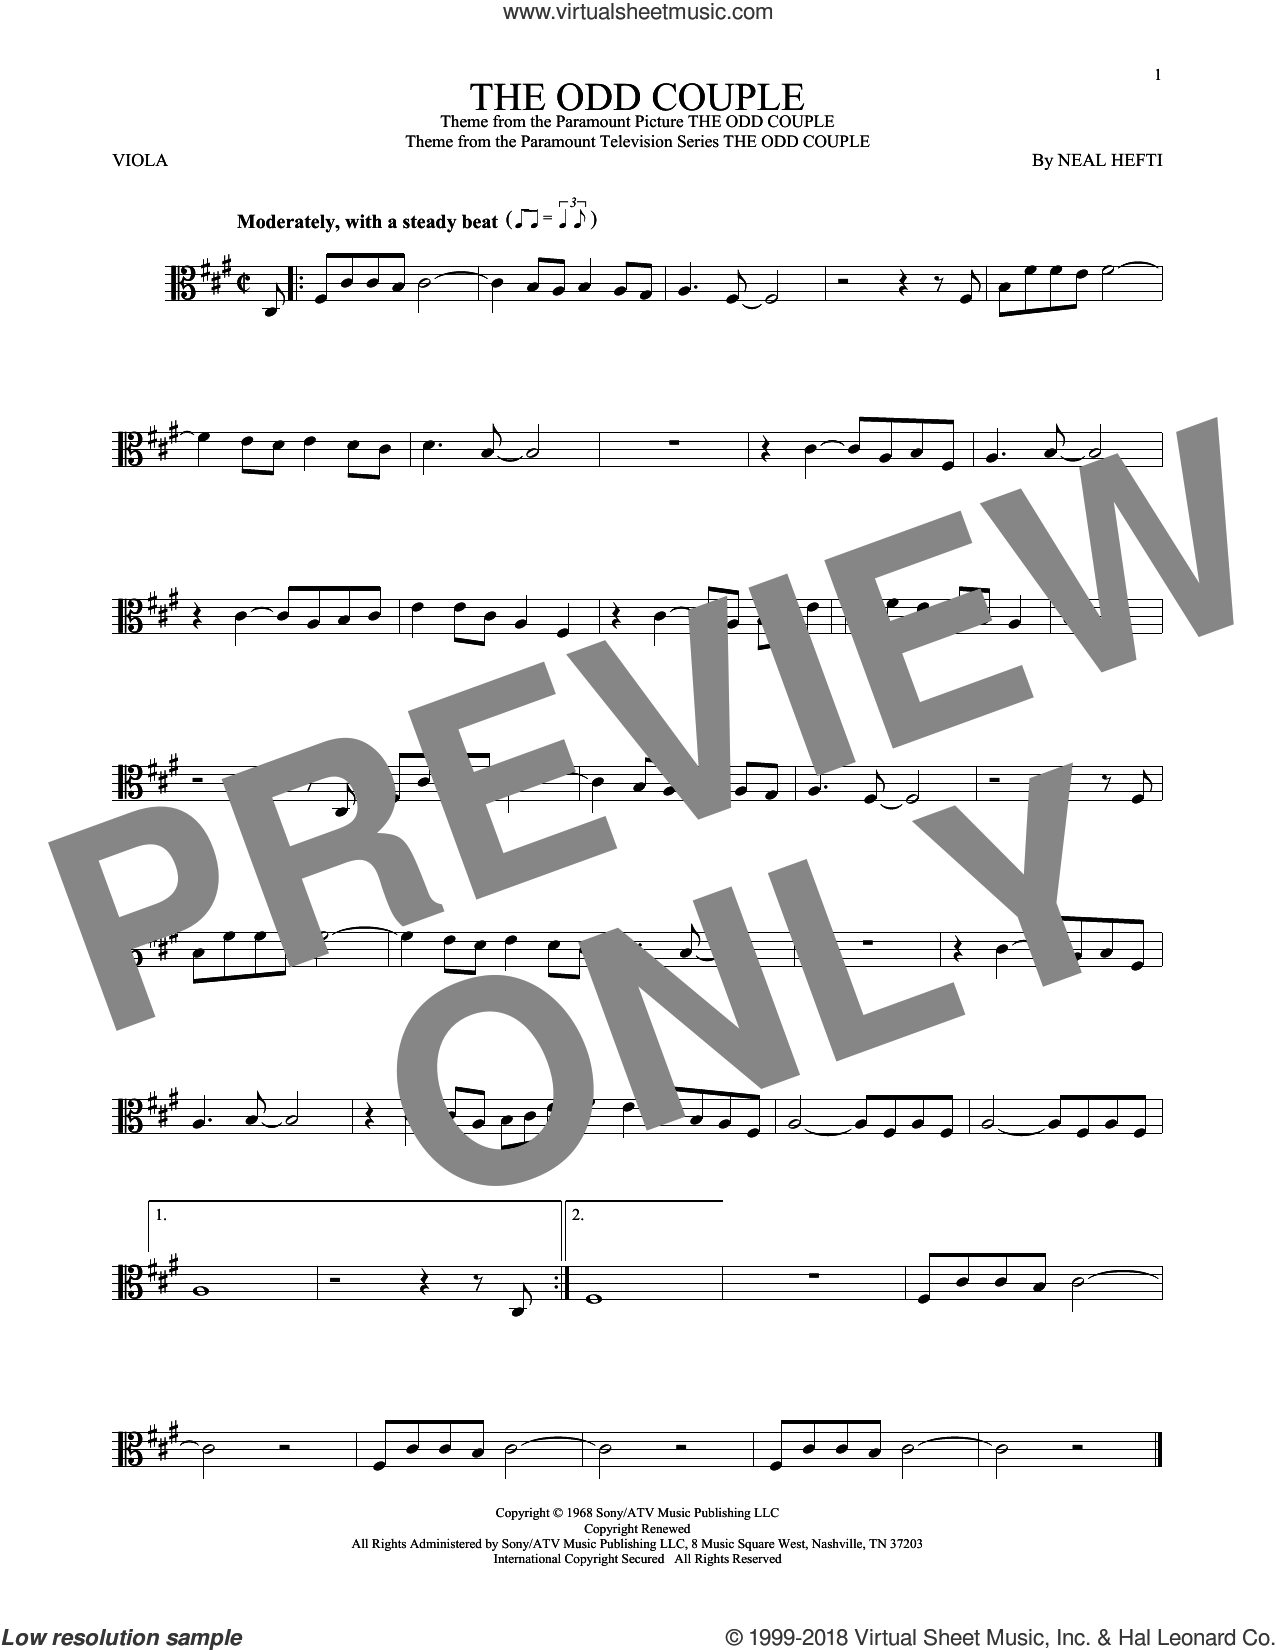 The Odd Couple sheet music for viola solo by Sammy Cahn and Neal Hefti, intermediate skill level